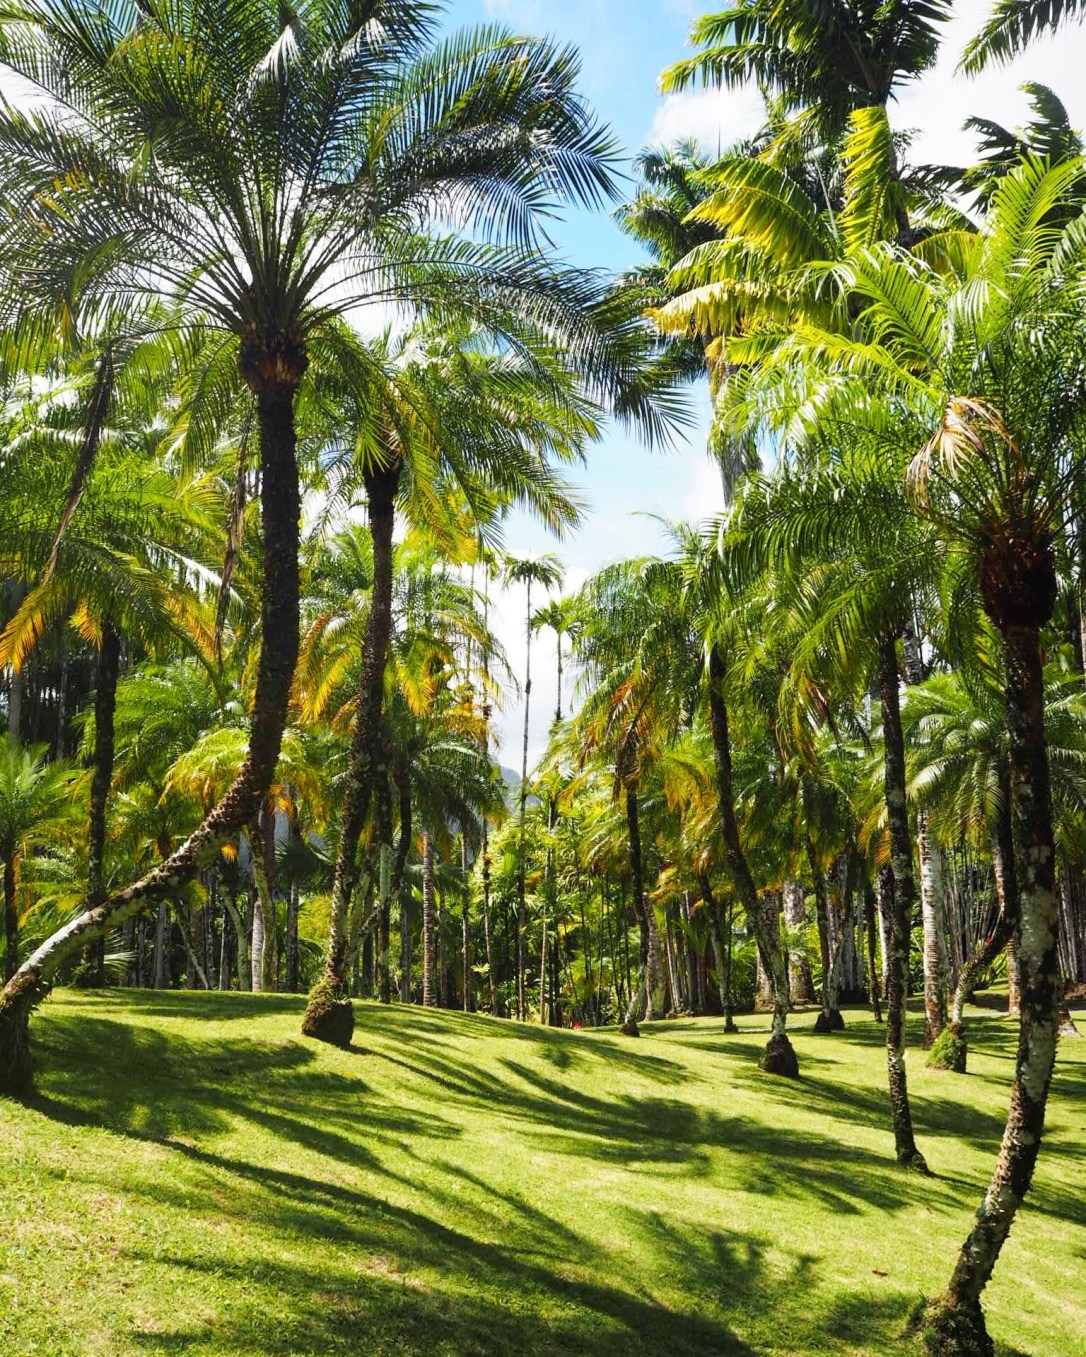 Palm tree shadows on the grass in Martinique's botanical garden